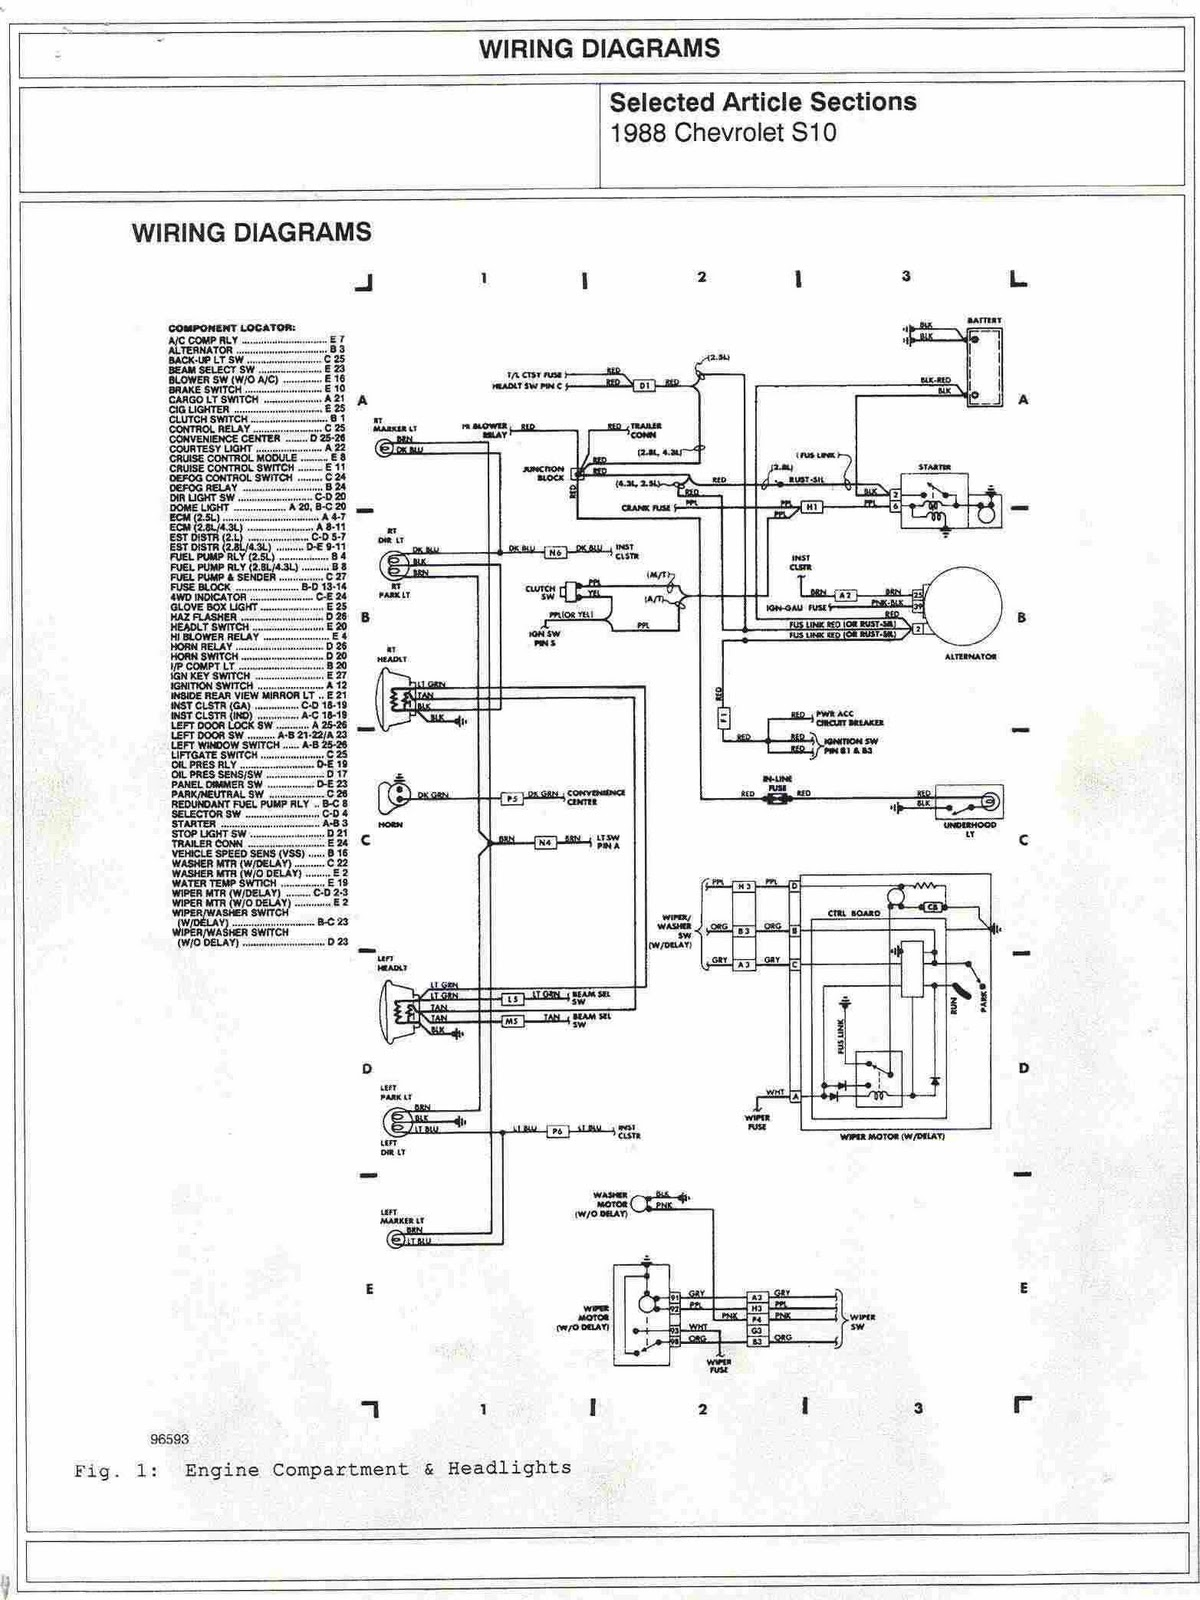 1988+Chevrolet+S10+Engine+Compartment+and+Headlights+Wiring+Diagrams 95 s10 wiring diagram 95 tahoe wiring diagram \u2022 wiring diagrams Silverado Transmission Wiring Diagram at soozxer.org